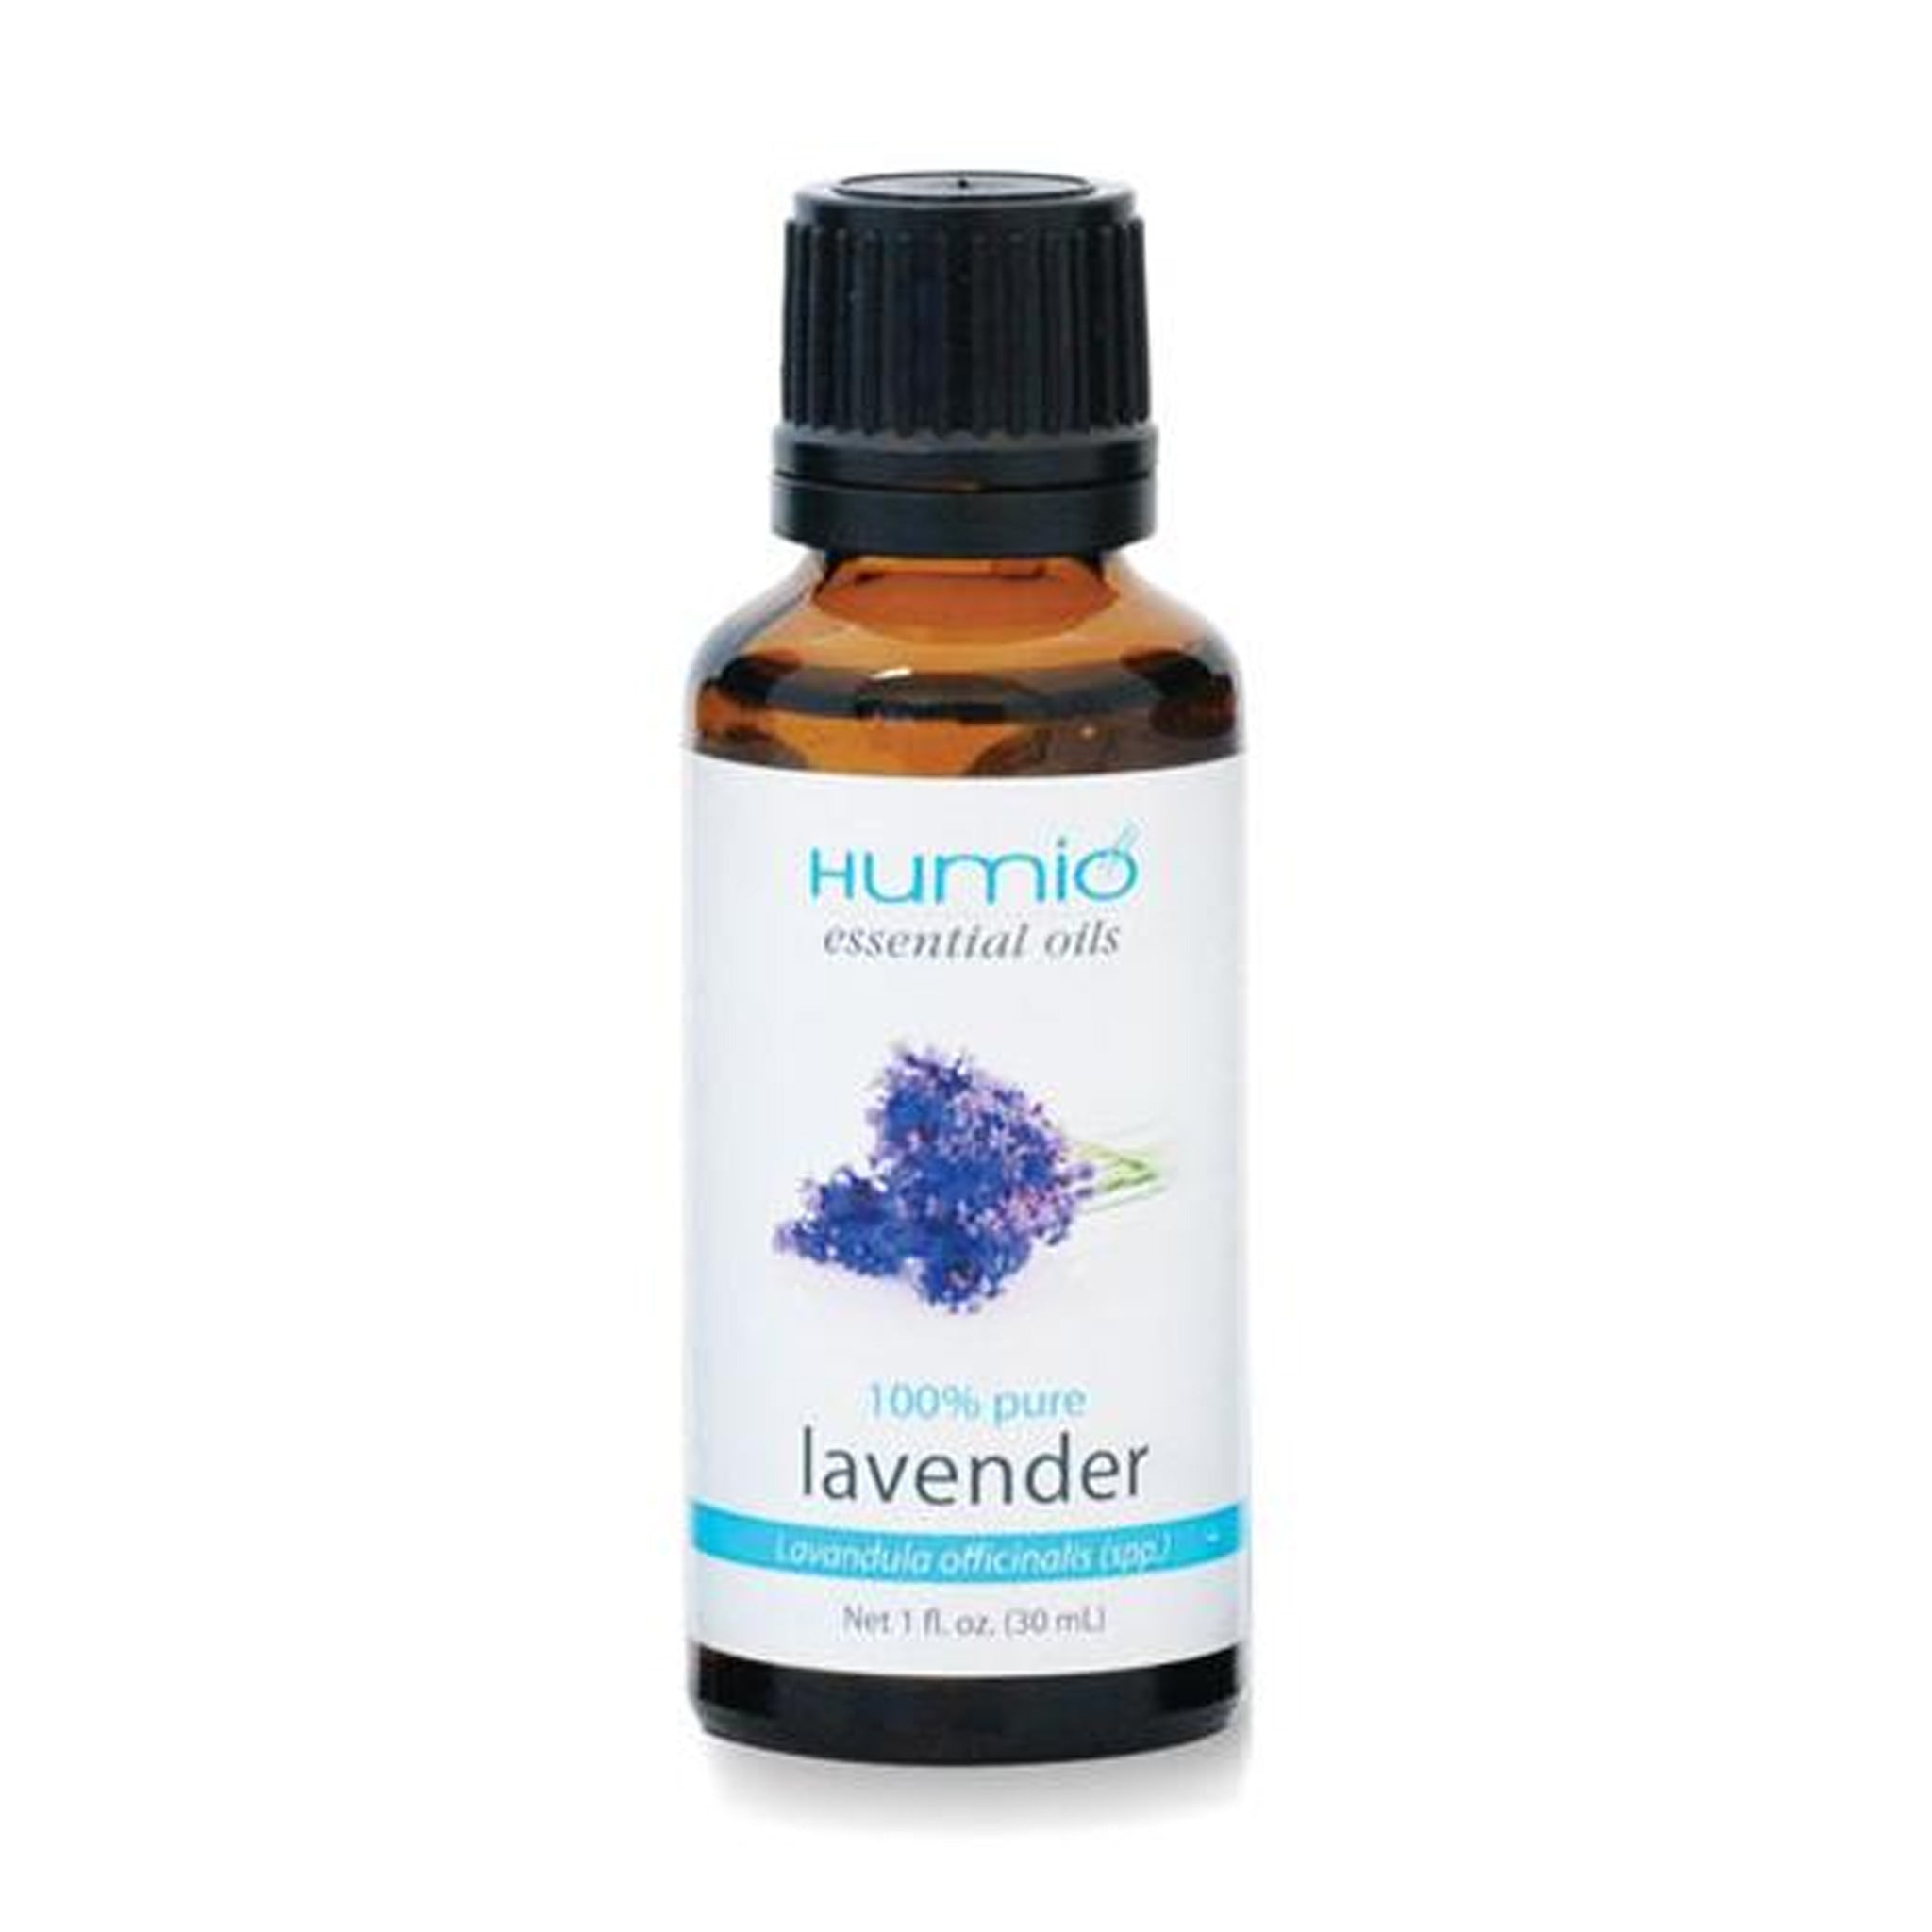 Humio Lavender Essential Oil (1 oz / 30mL) HU-35LA - Tribest